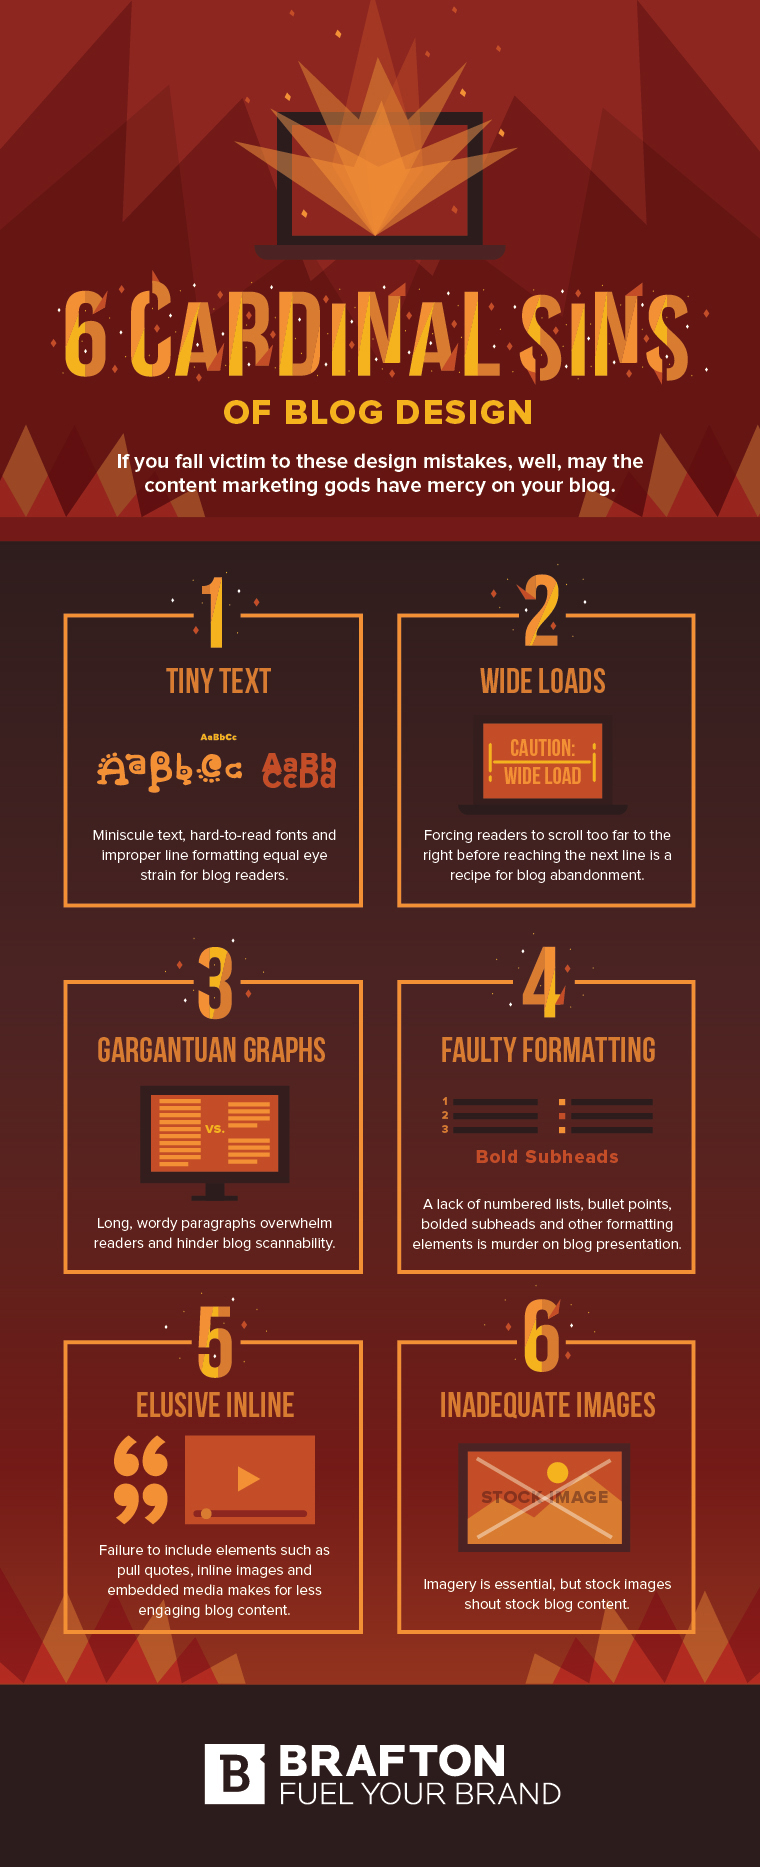 infographic outlines some key, common blogging mistakes